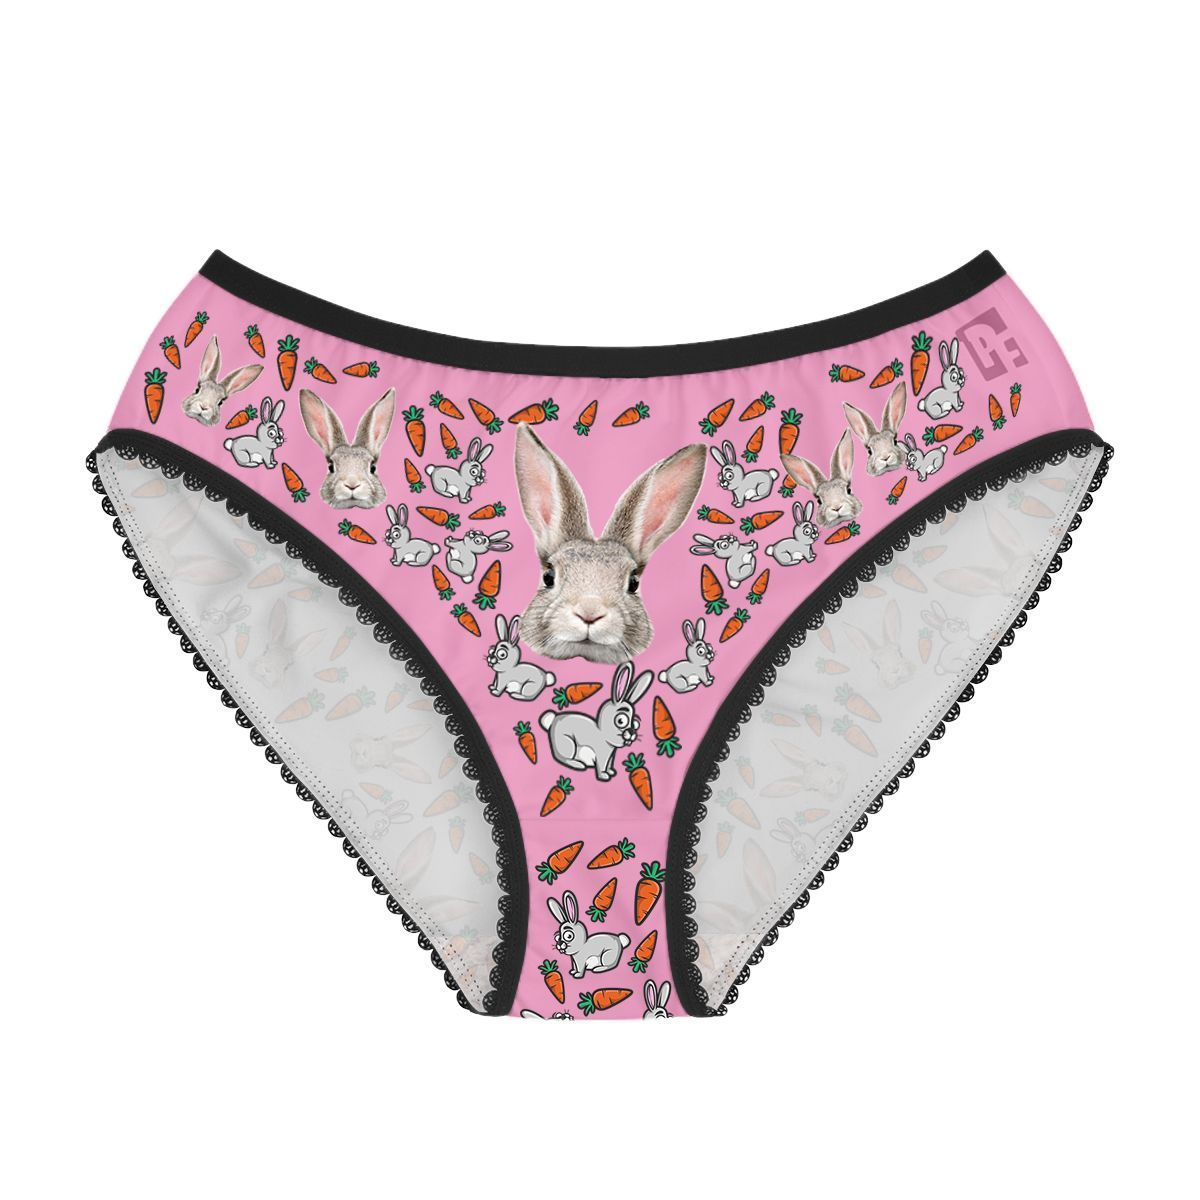 Pink Bunny women's underwear briefs personalized with photo printed on them